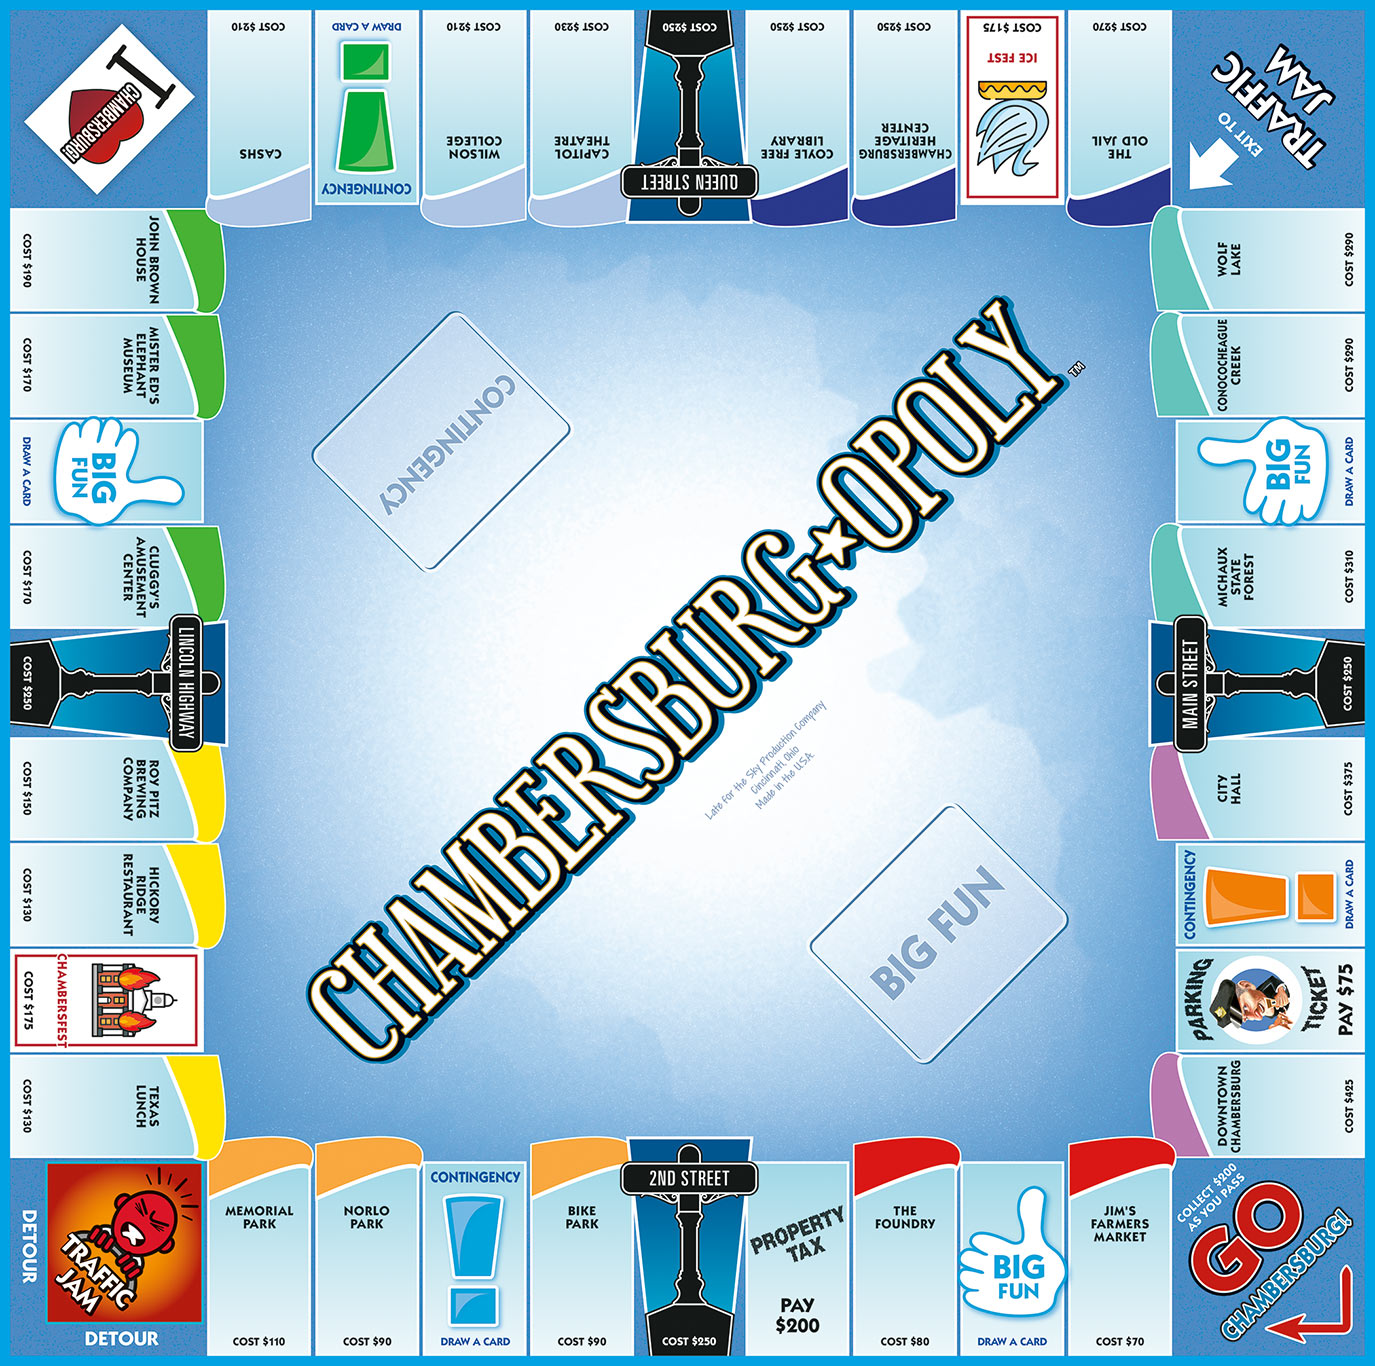 CHAMBERSBURG-OPOLY Board Game